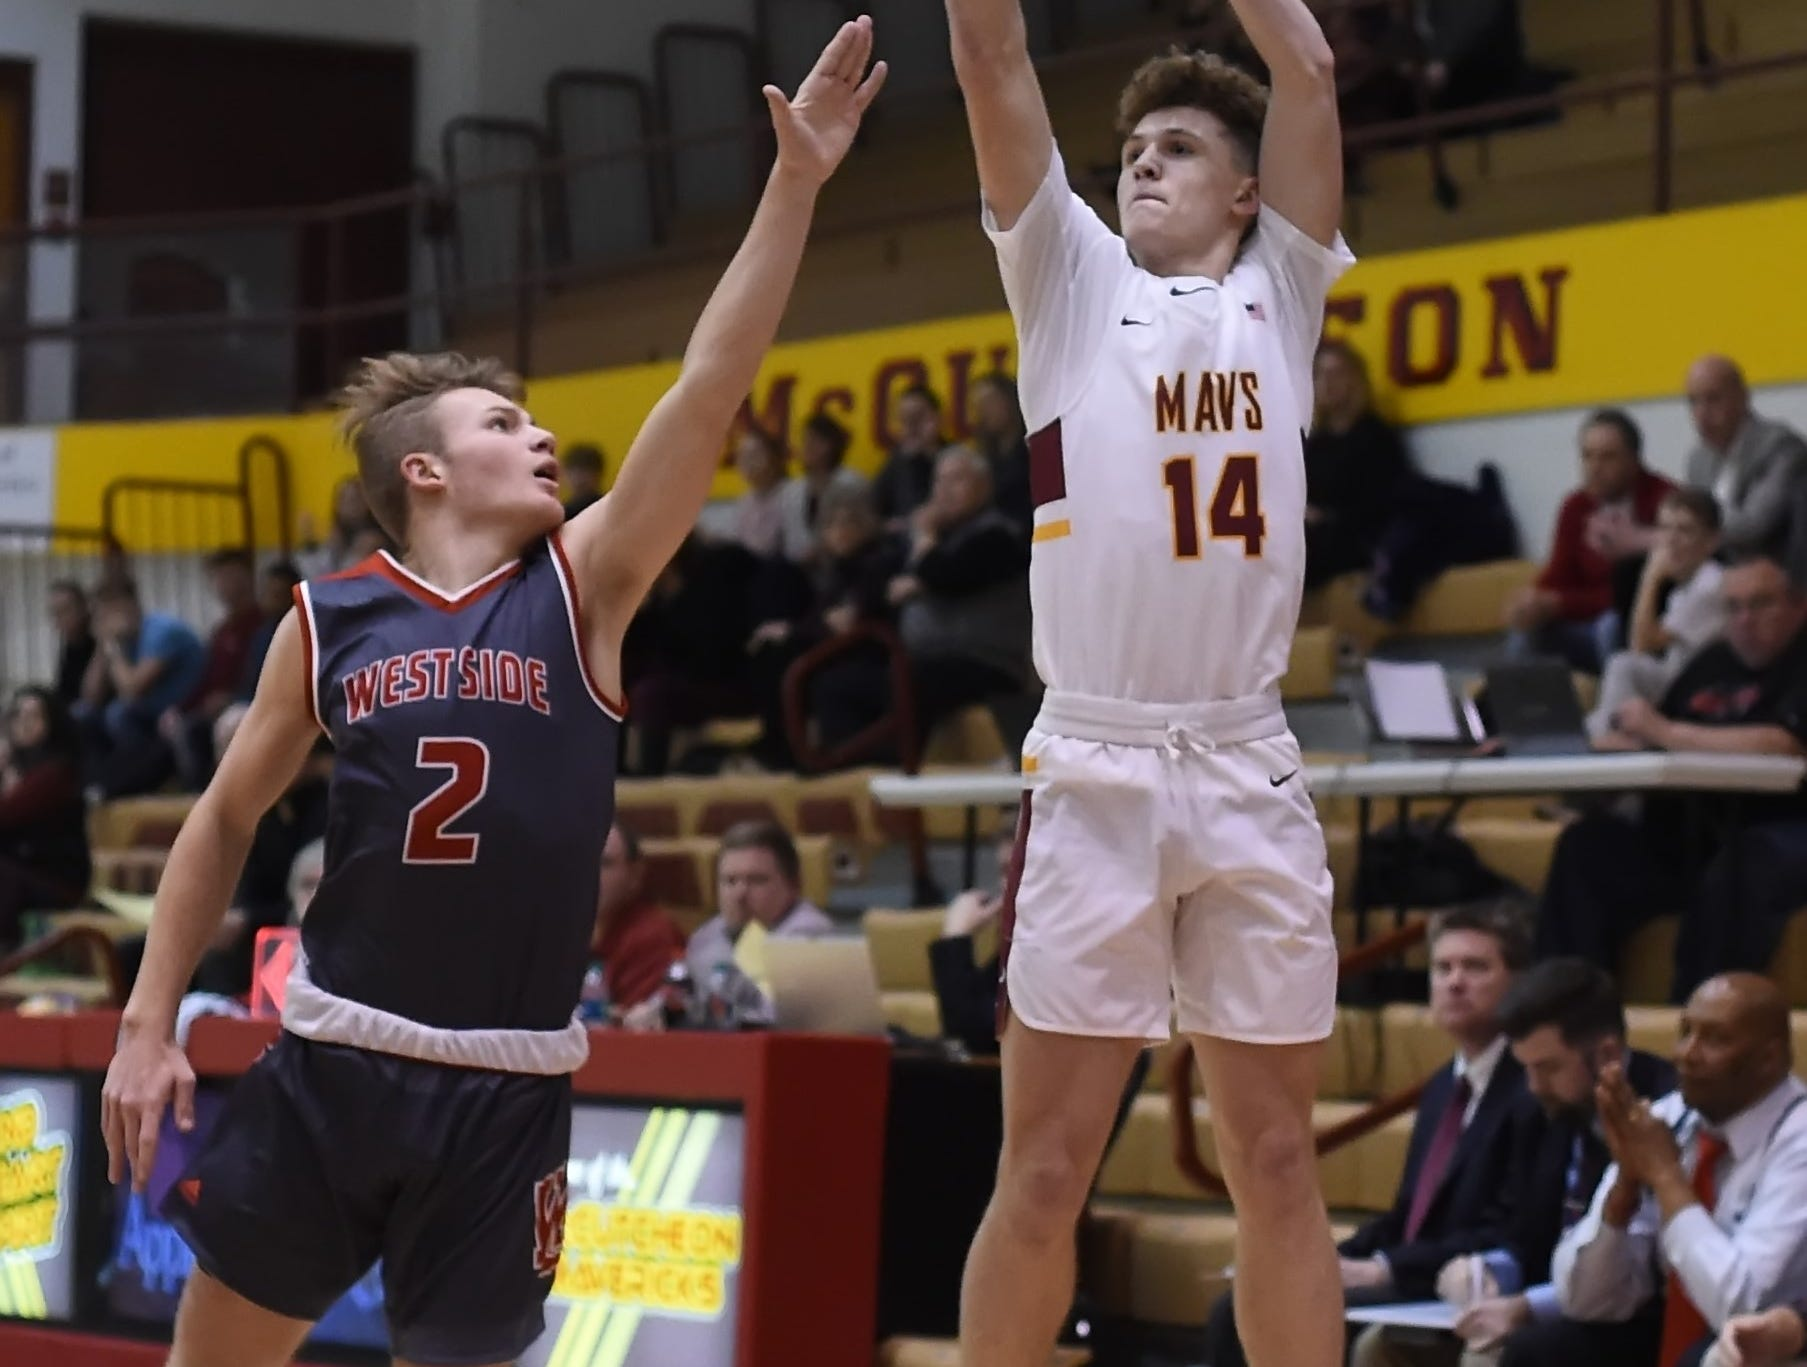 Scenes from Thursday night basketball action as the Mavericks of McCutcheon host the West Side Red Devils. Rowen Farrell.